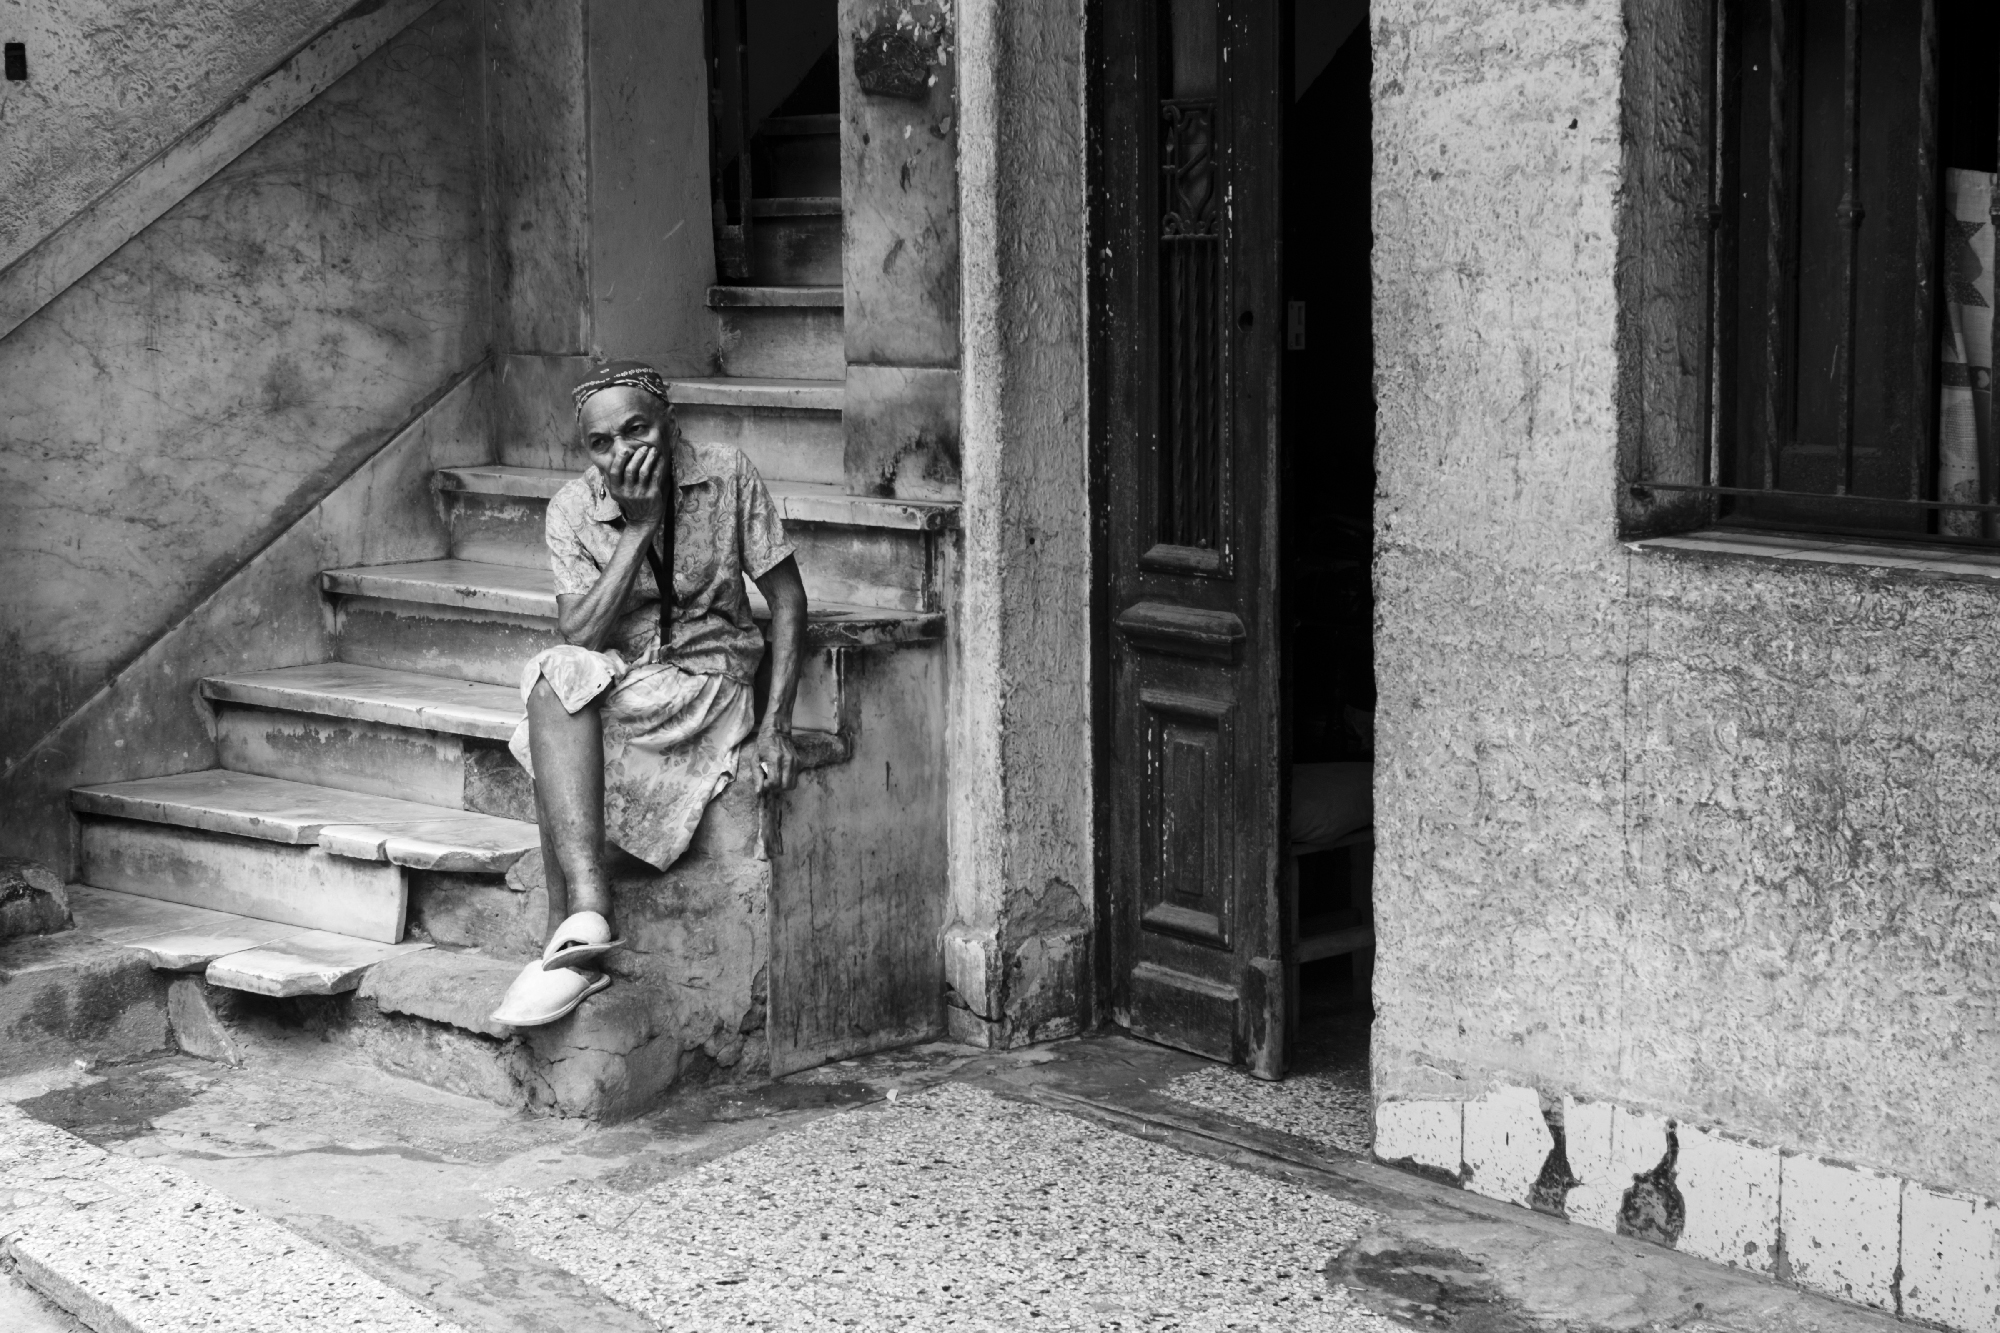 Most mornings and evenings are spent sitting in doorways or steps along the narrow streets.